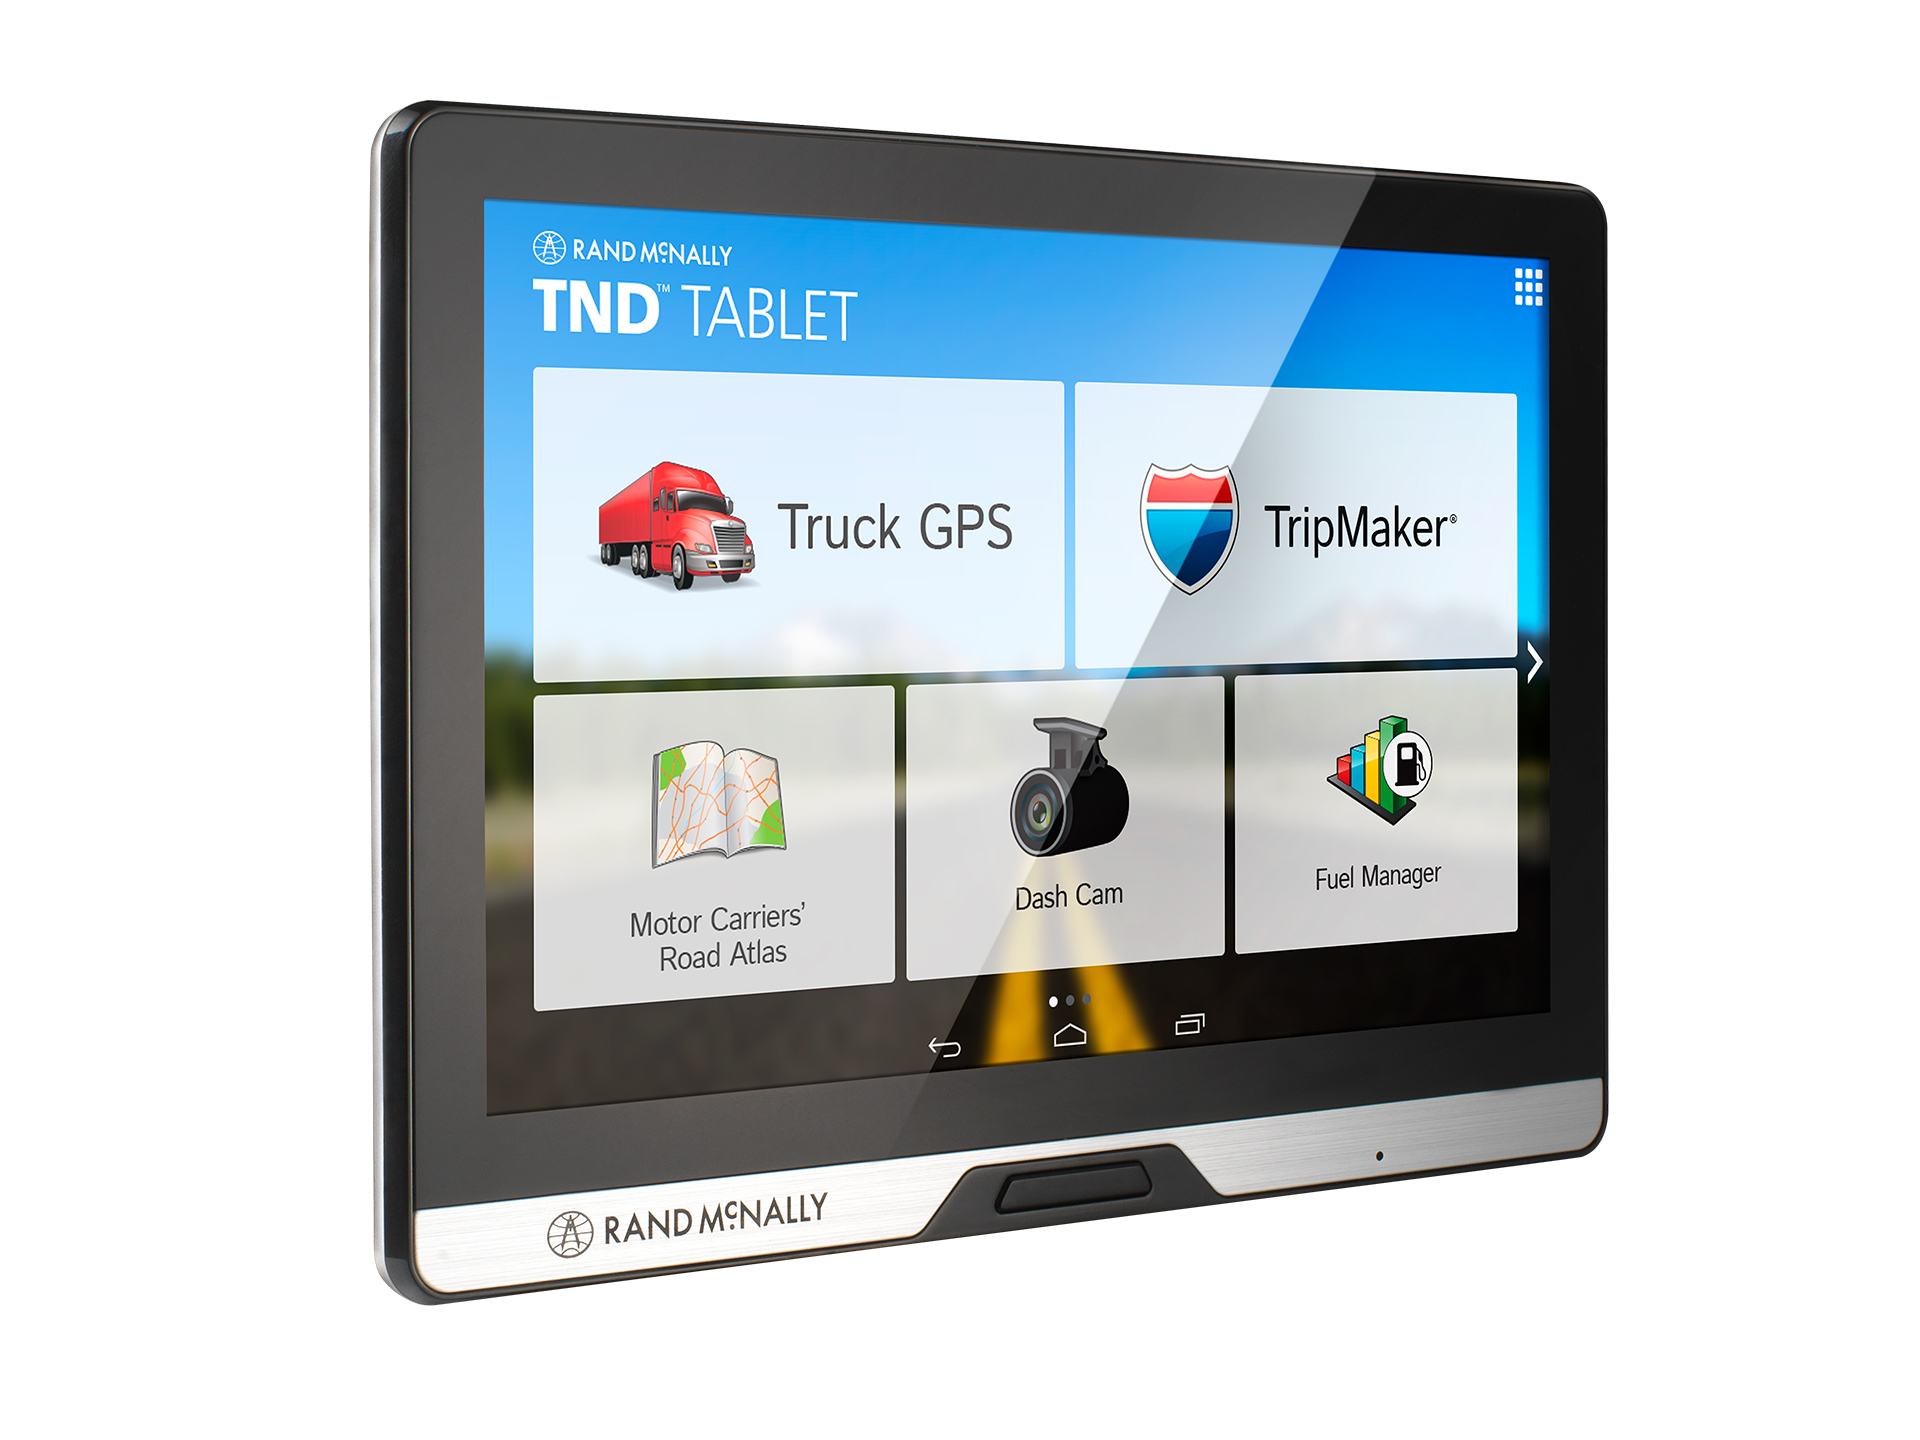 5 Best Rand McNally GPS Units